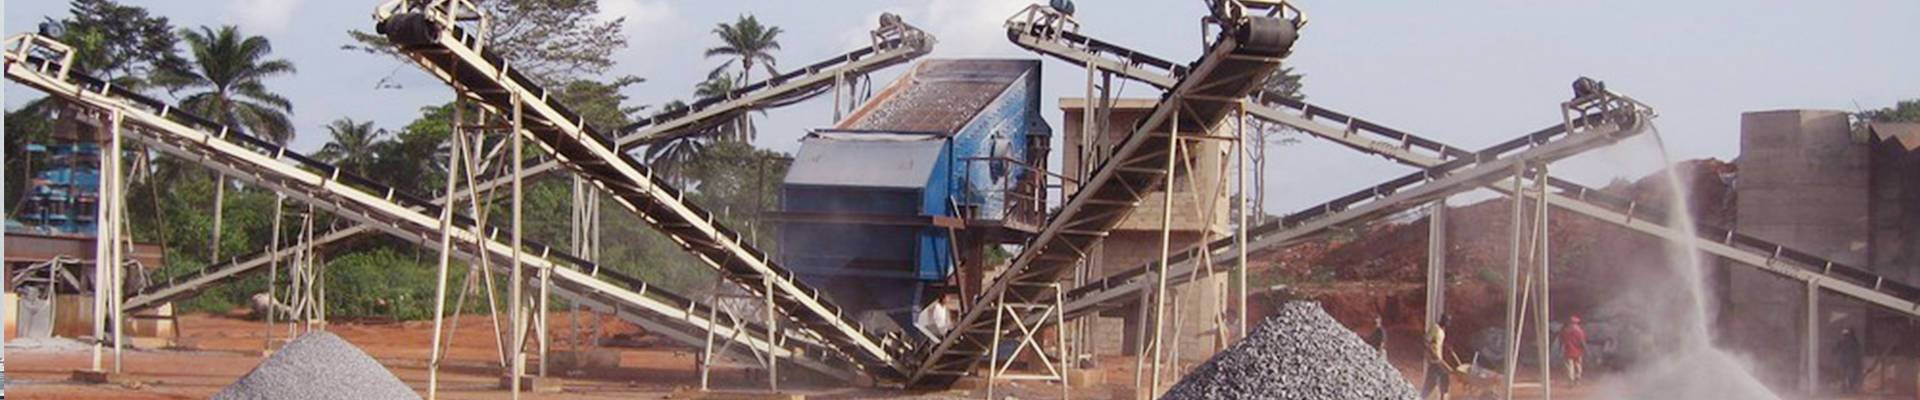 Dewatering Vibrating Screens